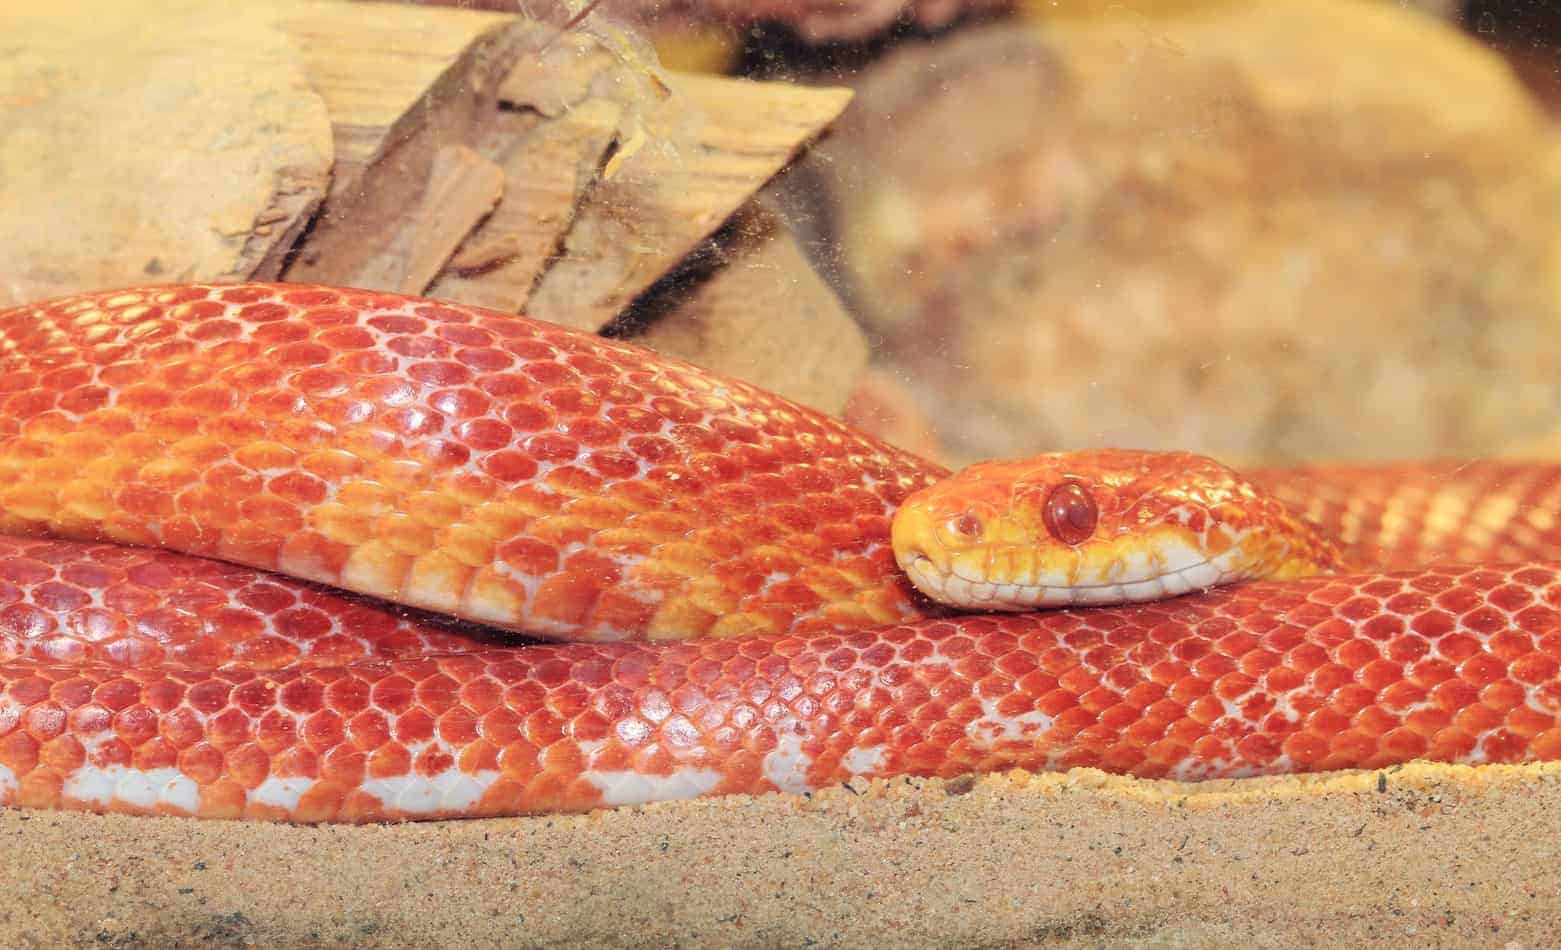 What Happens When a Corn Snake Bites? (With Pictures and Facts)